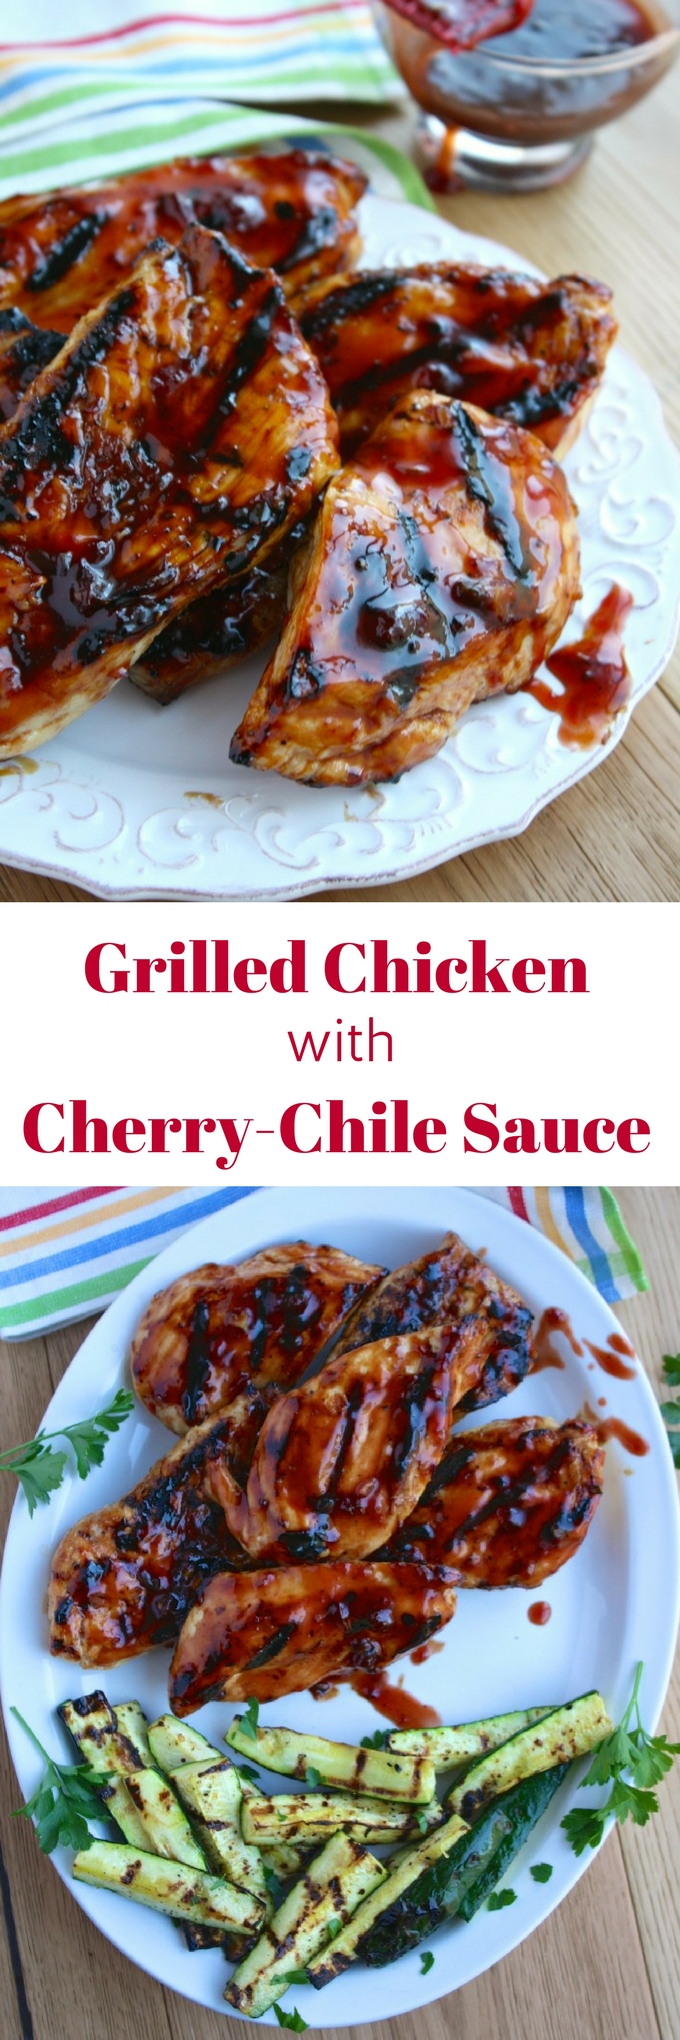 Grilled Chicken with Cherry-Chile Sauce is a dish to make before the grilling season ends! You'll love the big flavor in this dish.